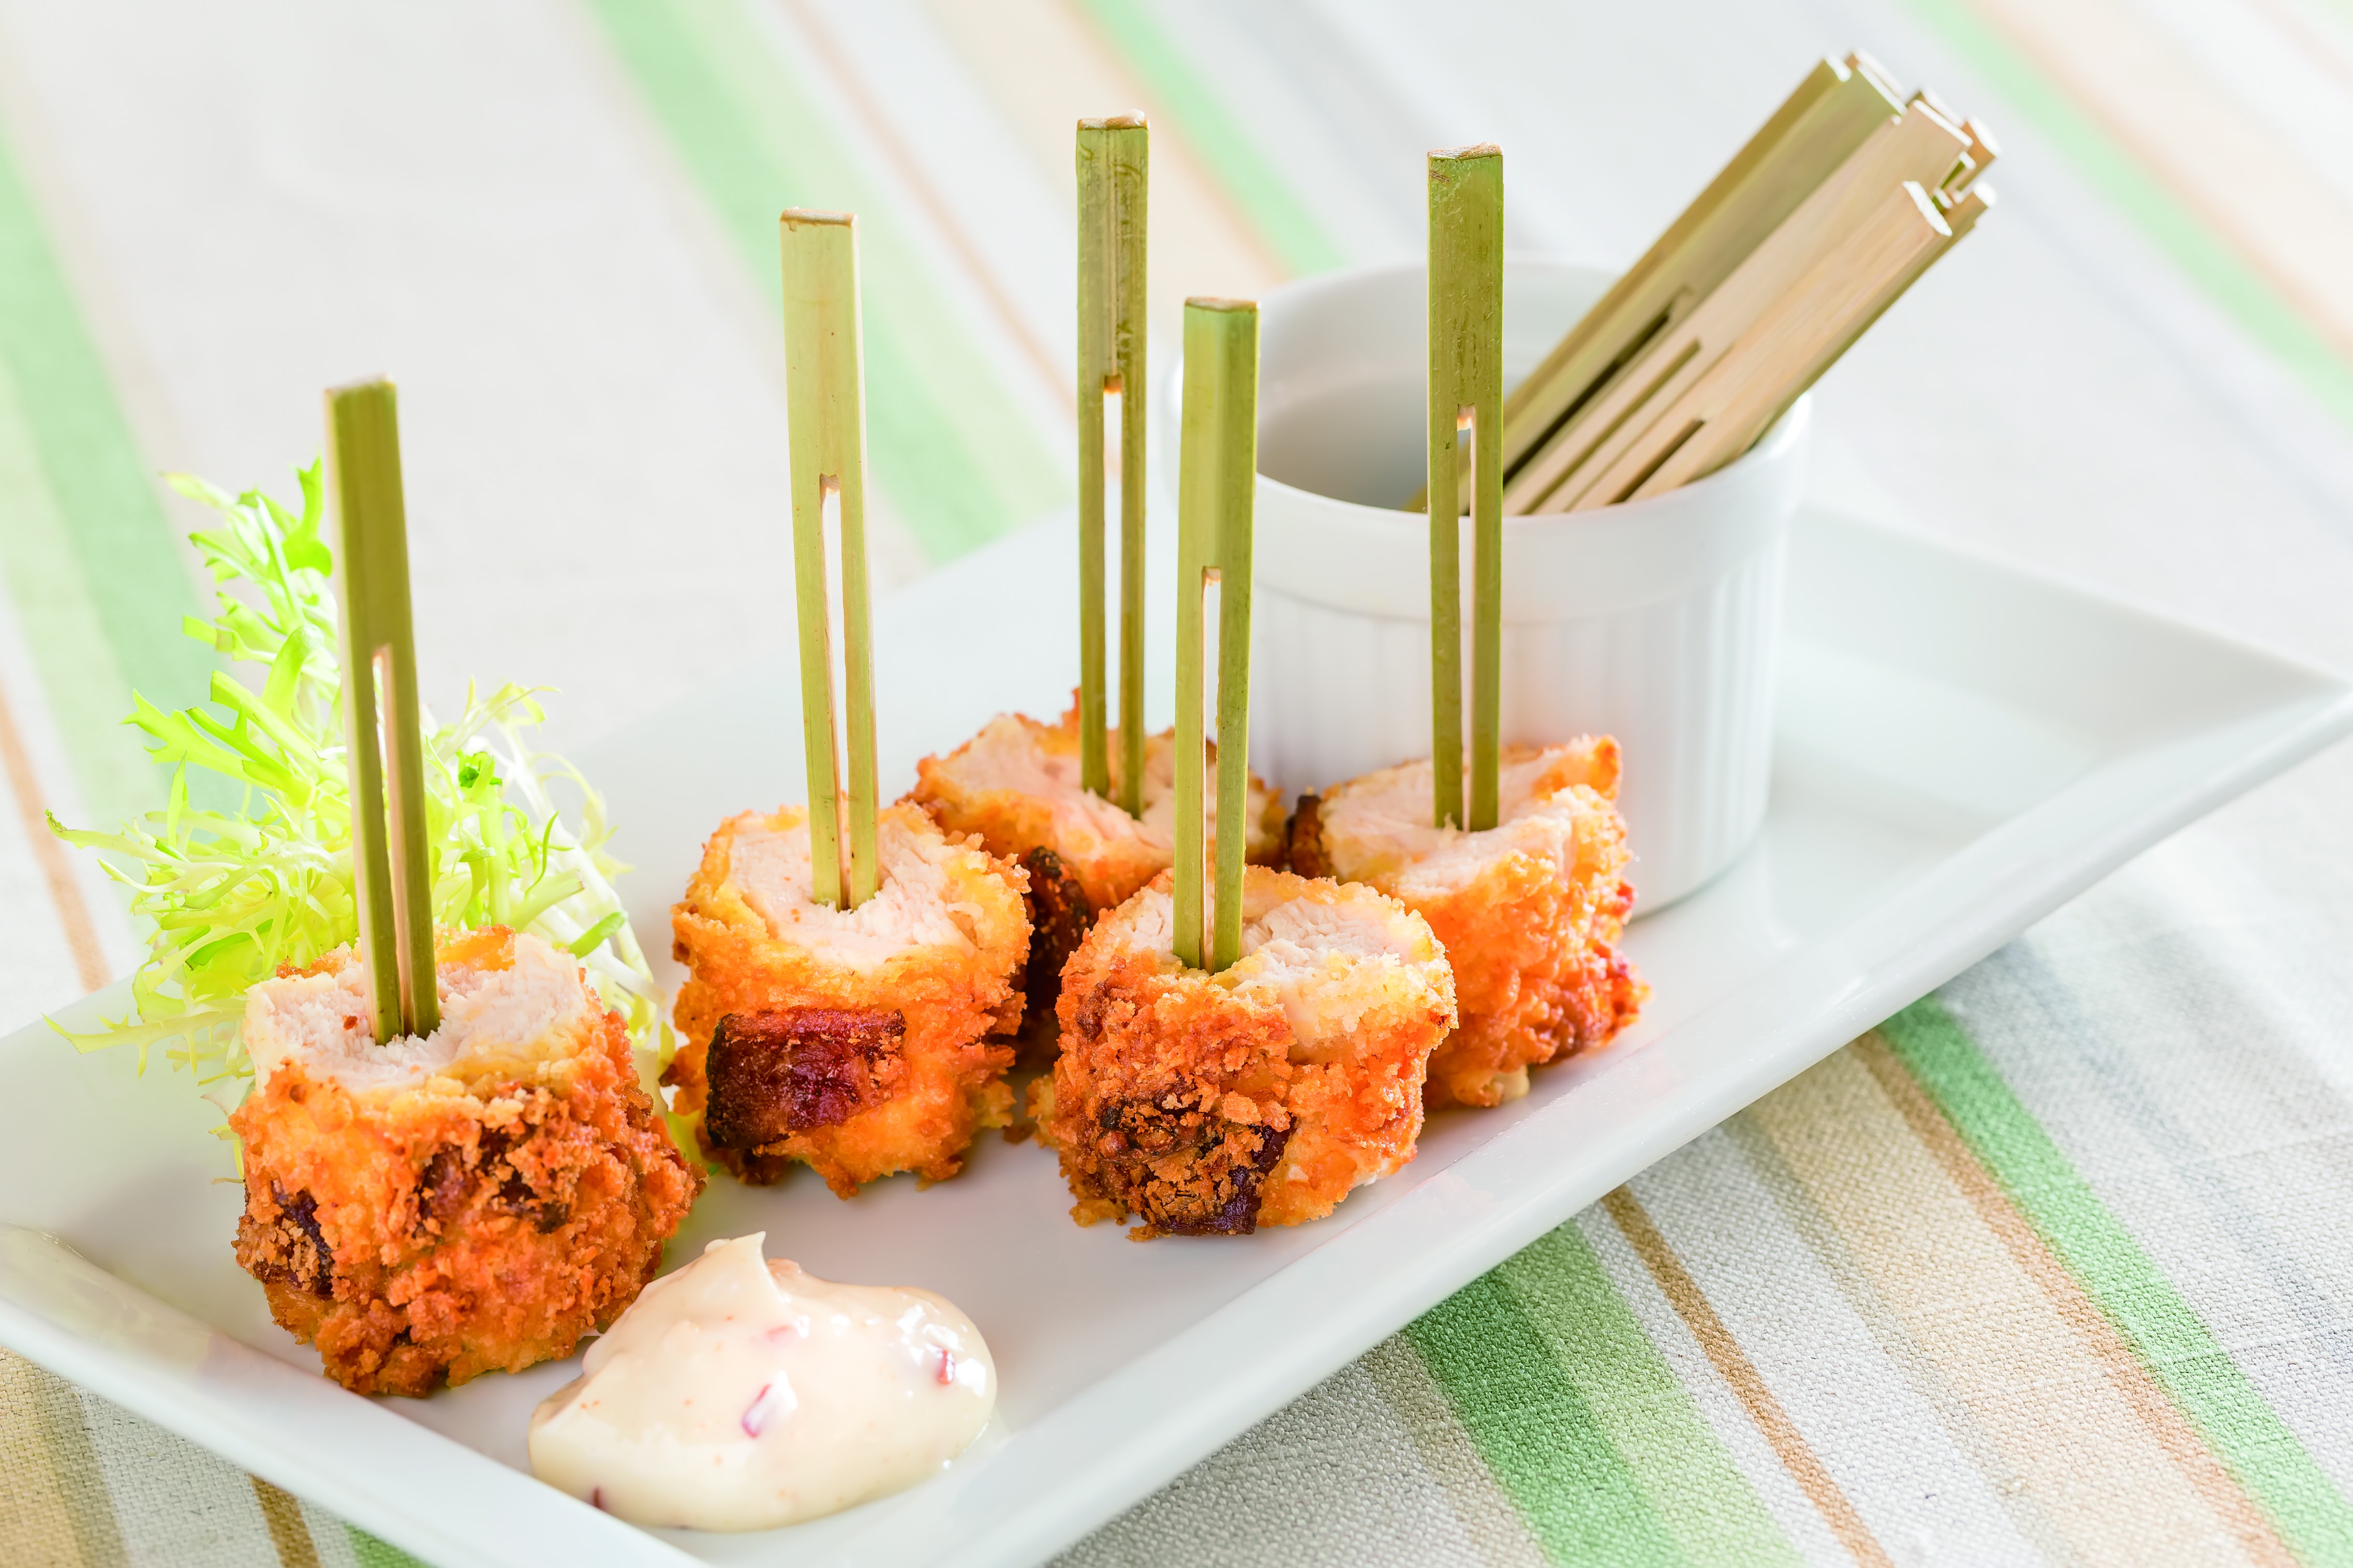 Mustard-And-Bacon-Crusted Chicken Bites With Bacon Aioli Recipe